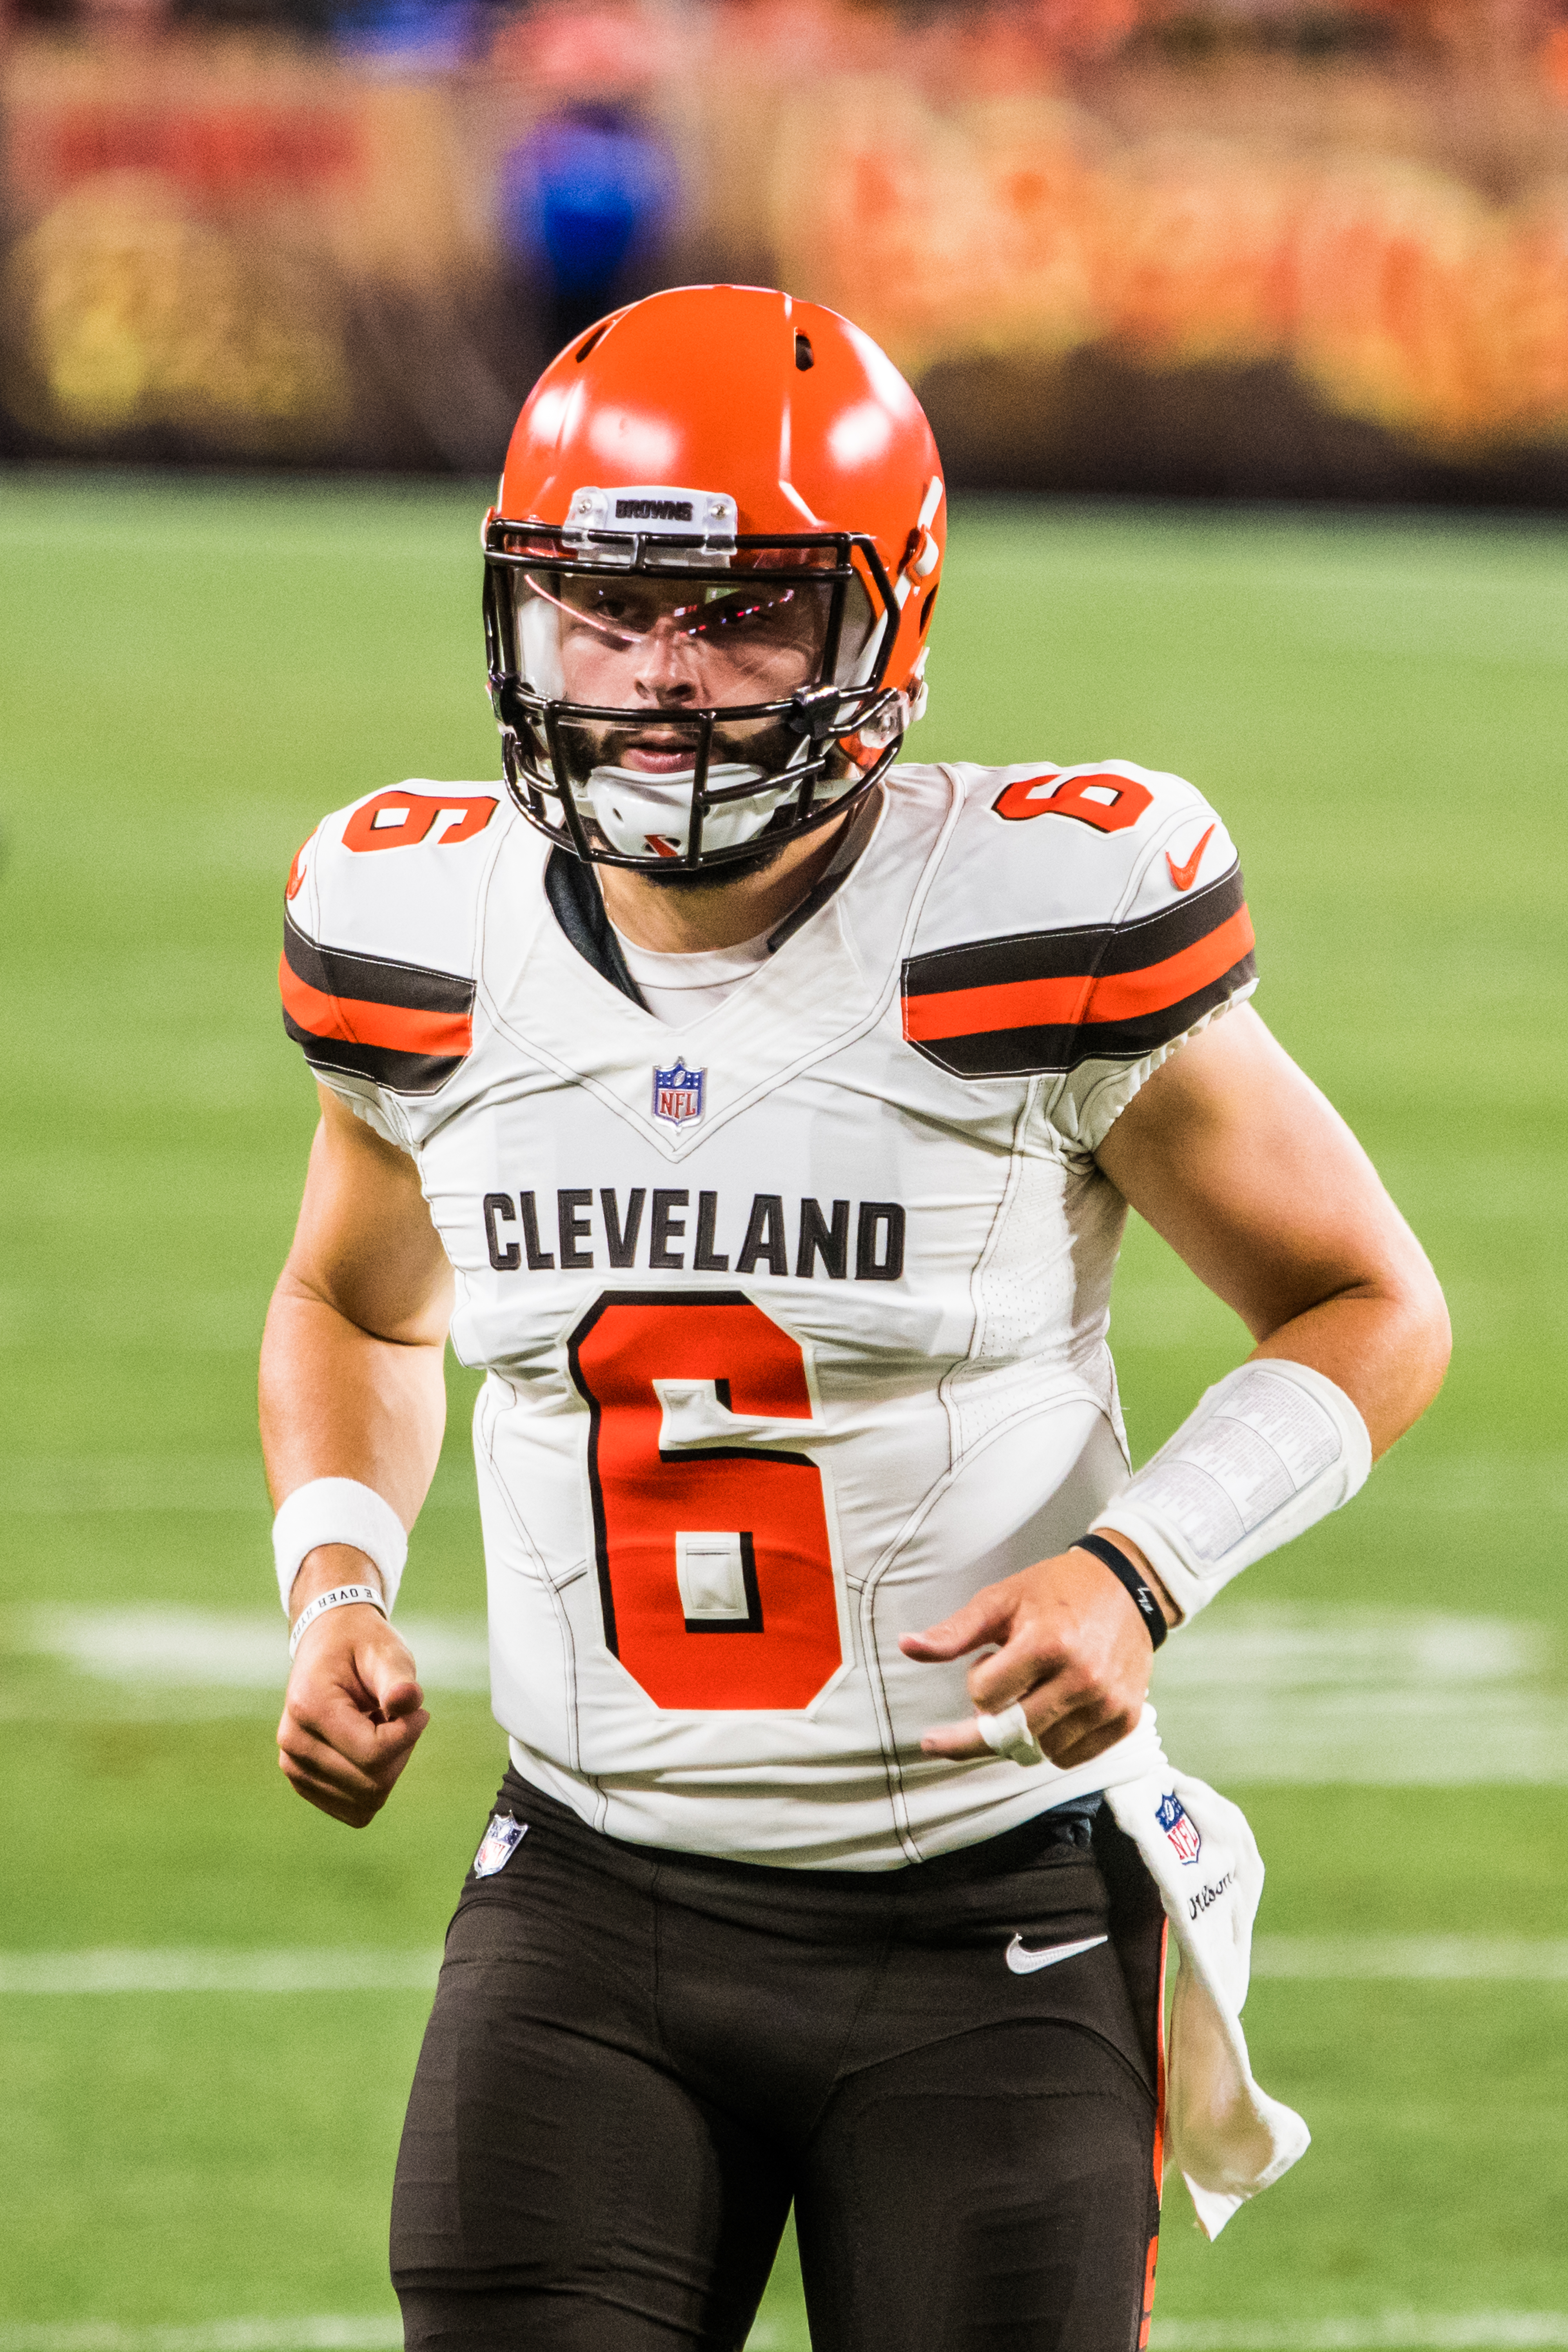 most popular browns jersey